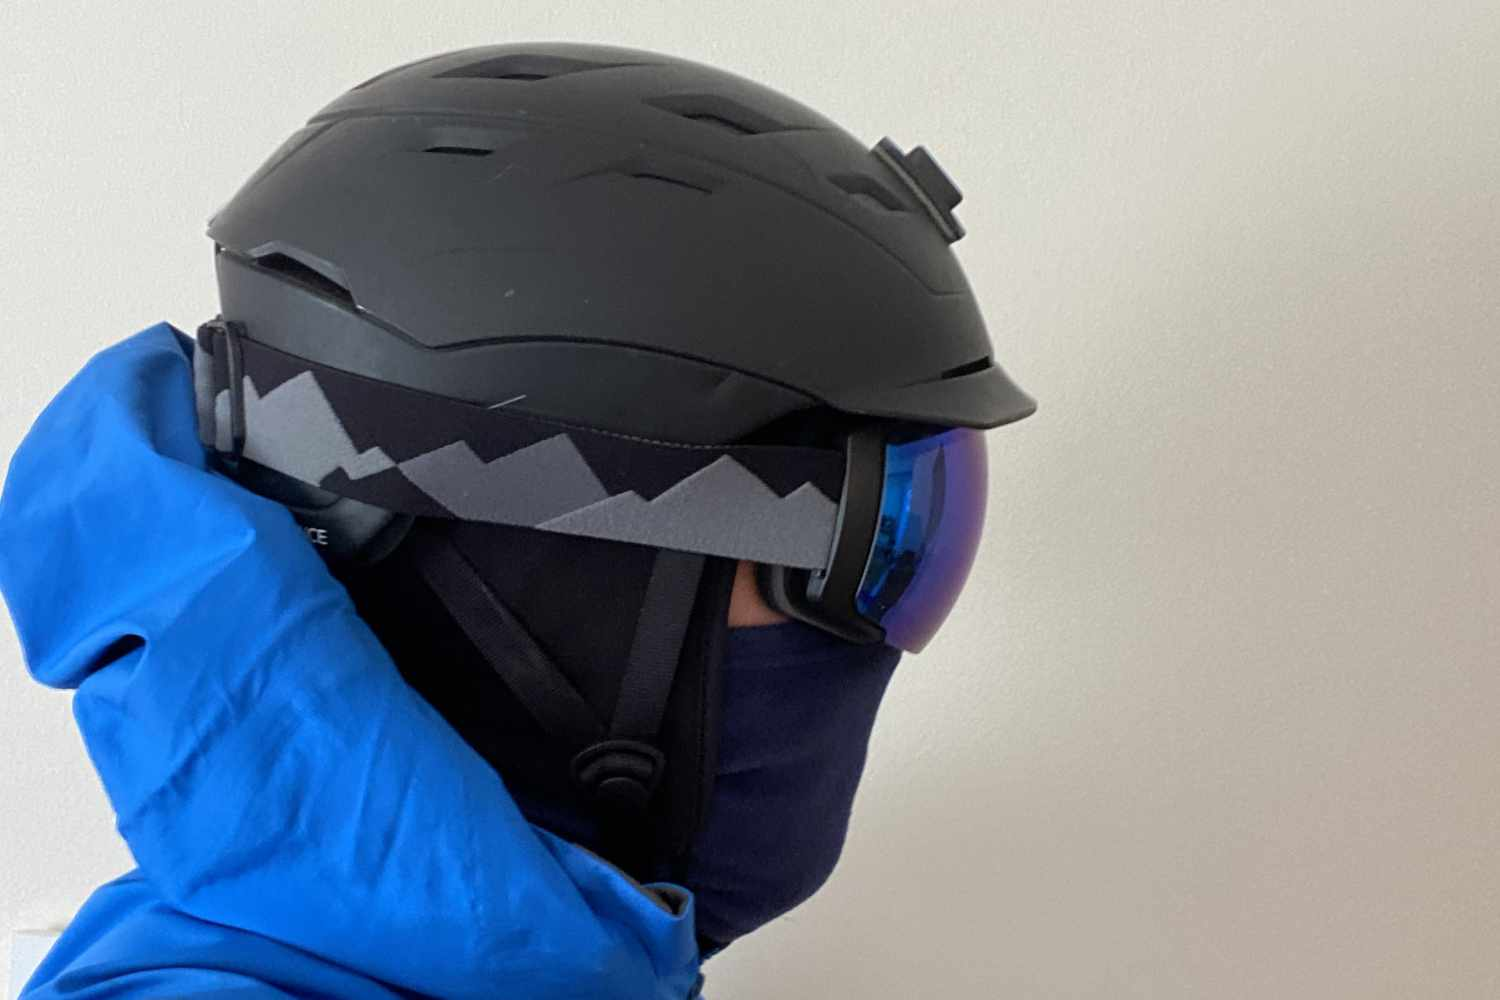 OM goggle smith helmet side view